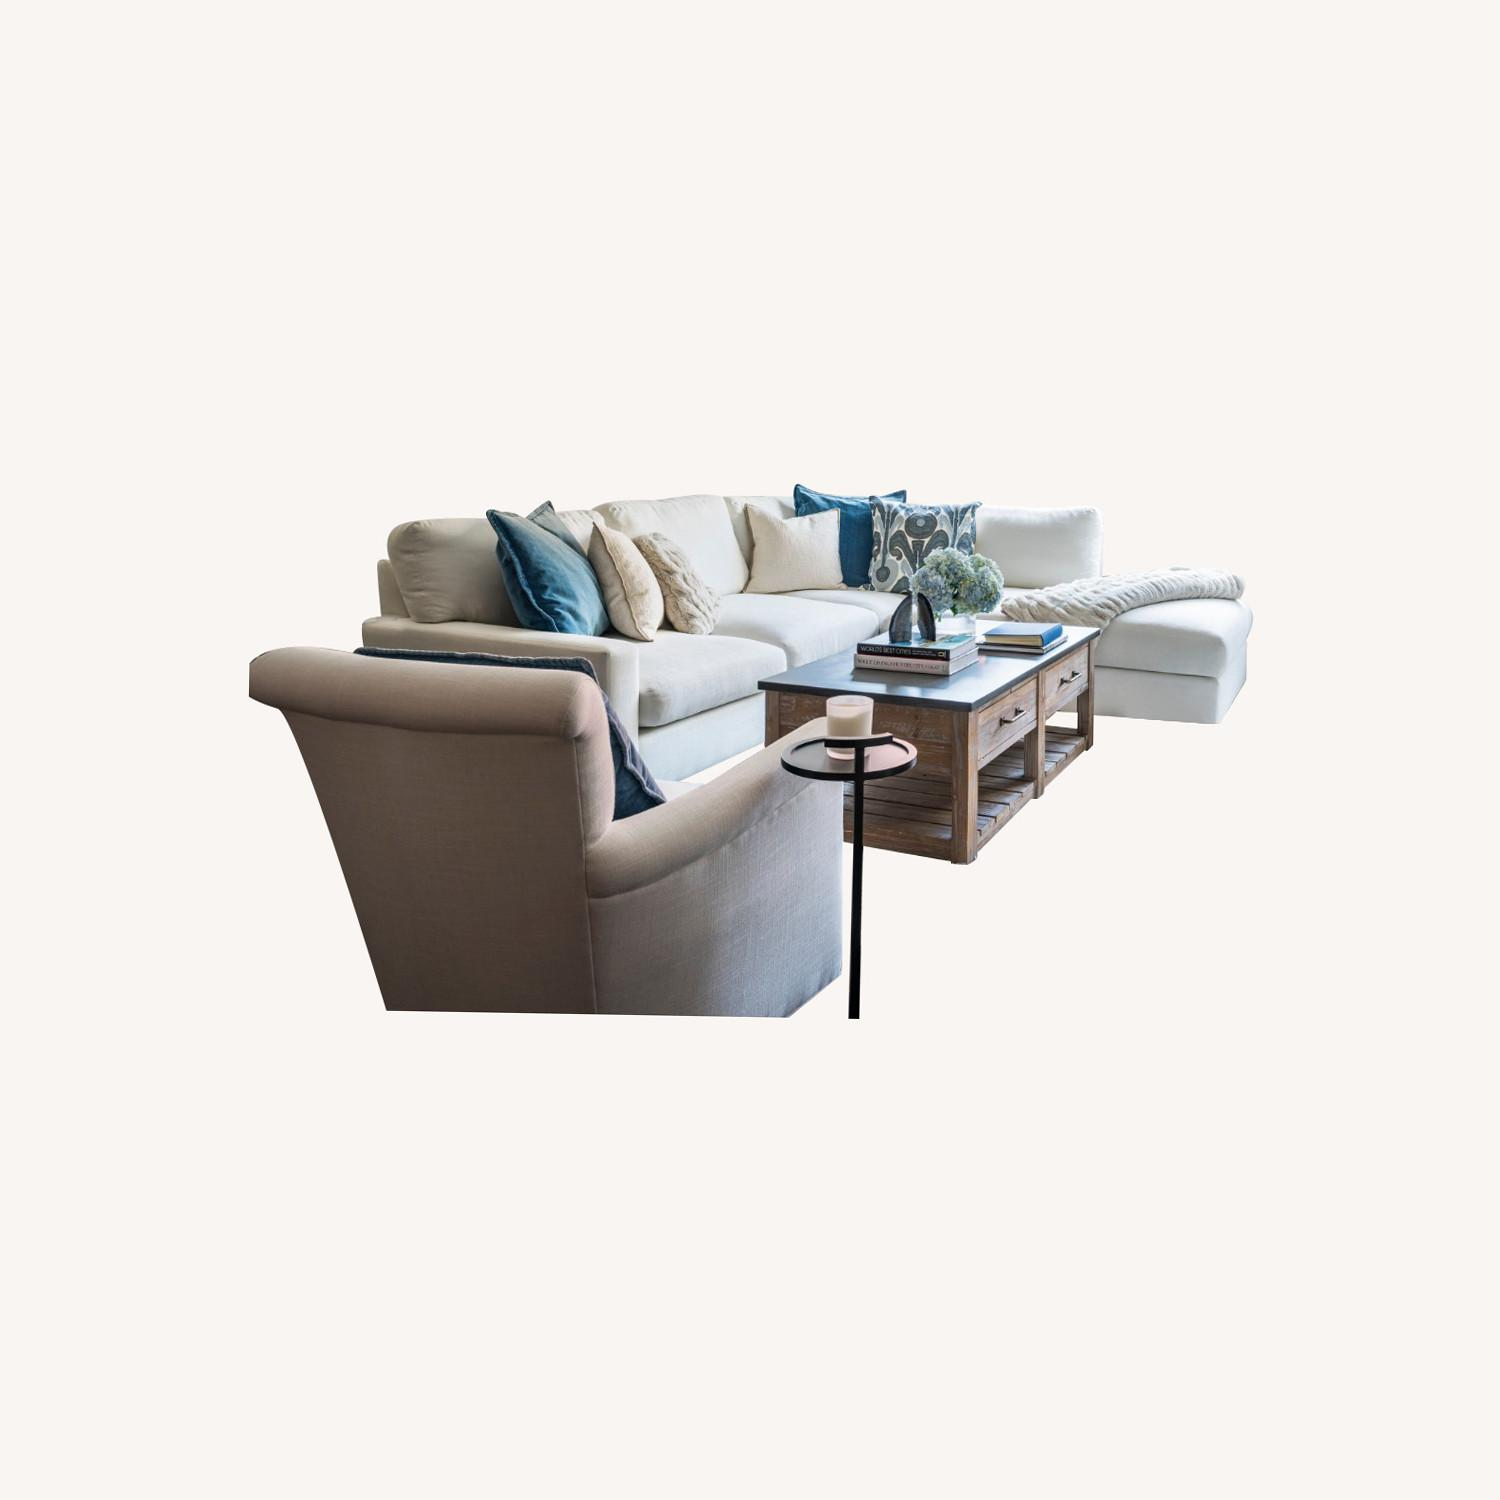 Pottery Barn Couch - image-0